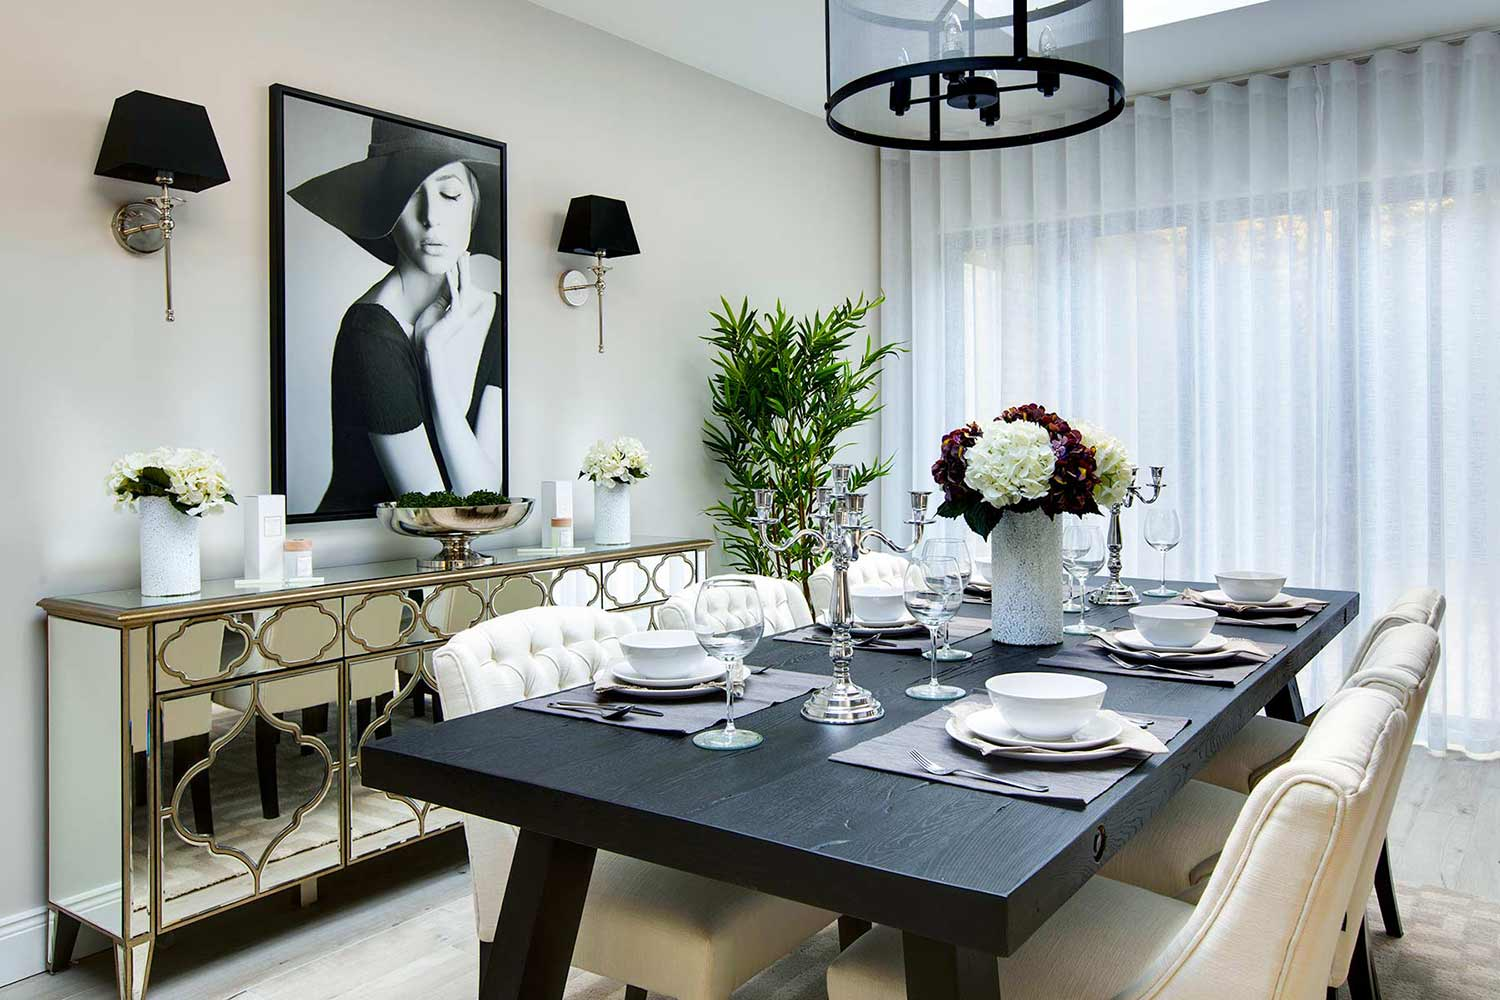 Beautiful dinning room and table